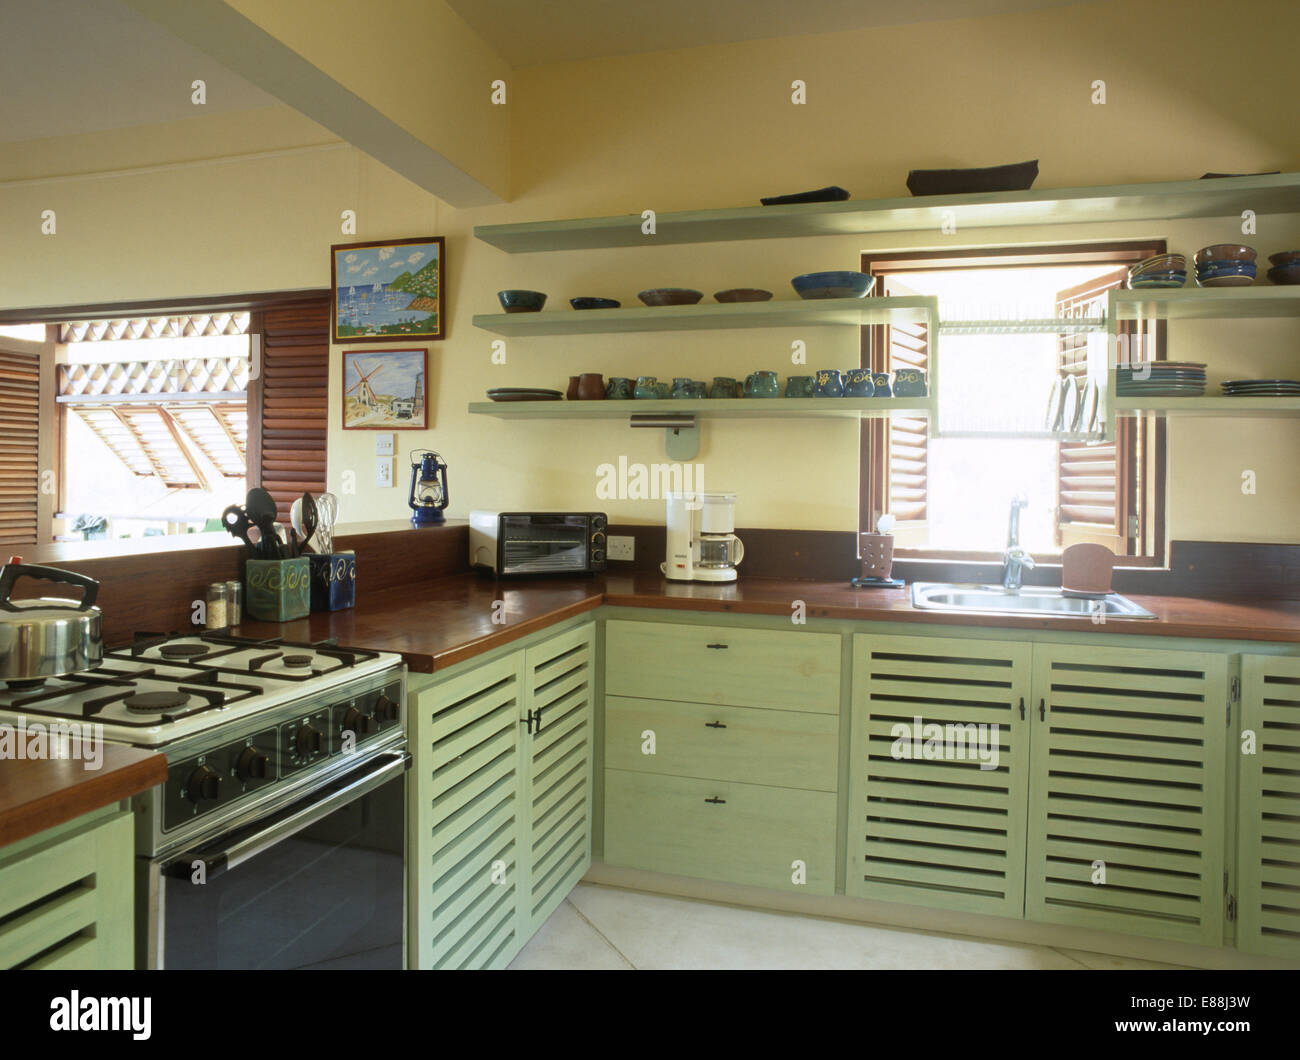 Shelves Above Pastel Green Units With Wood Worktops In